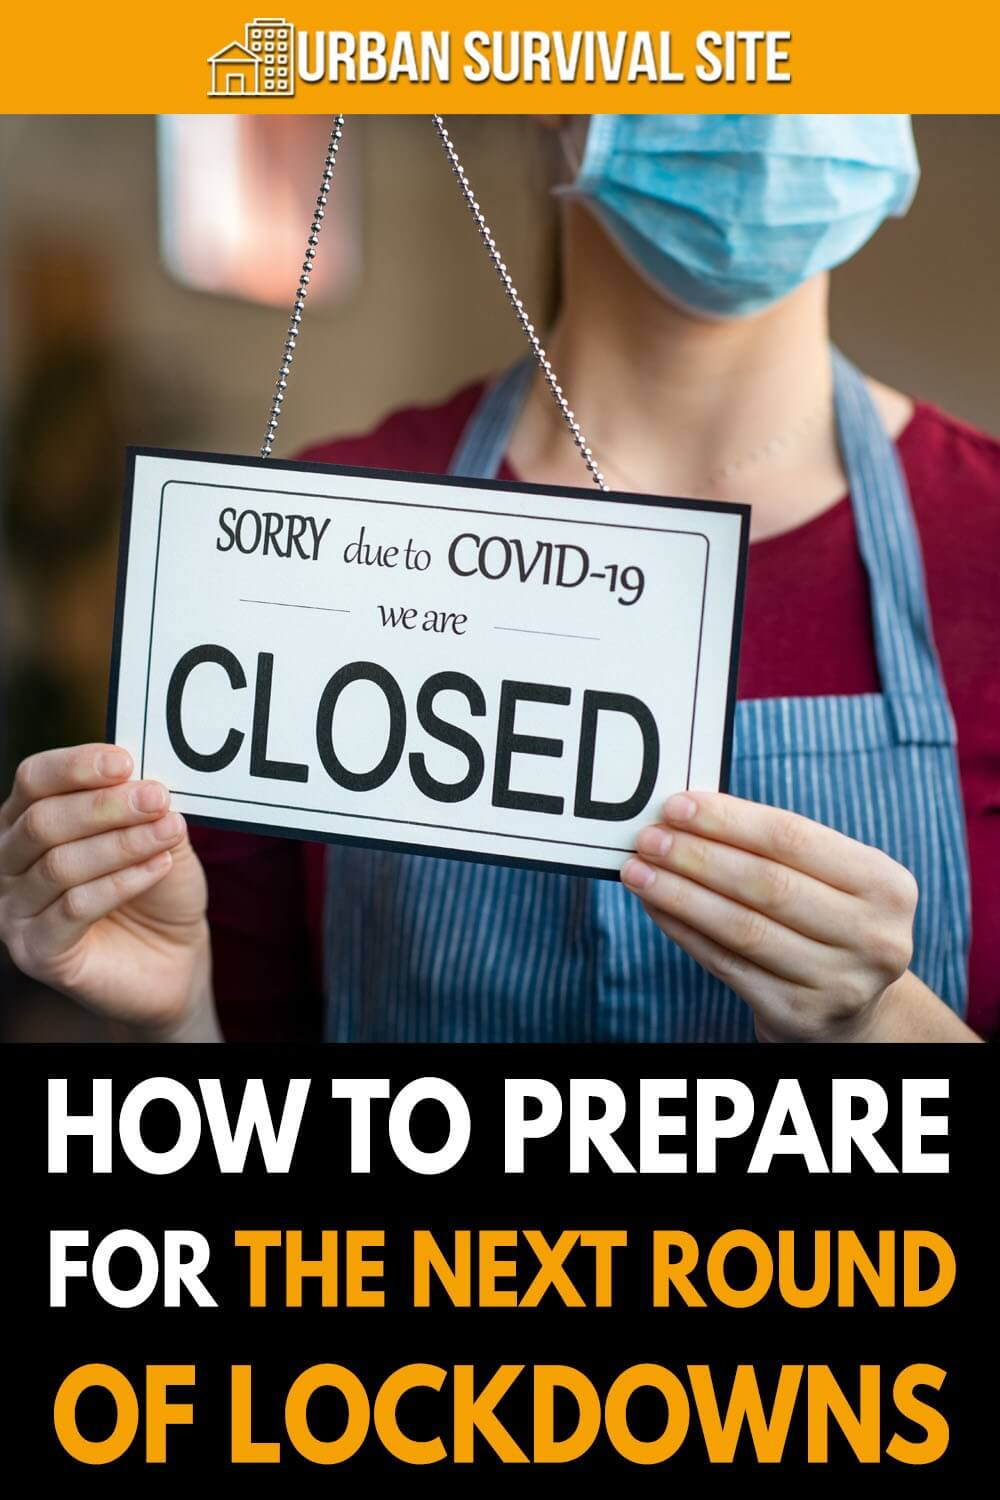 How To Prepare For The Next Round Of Lockdowns